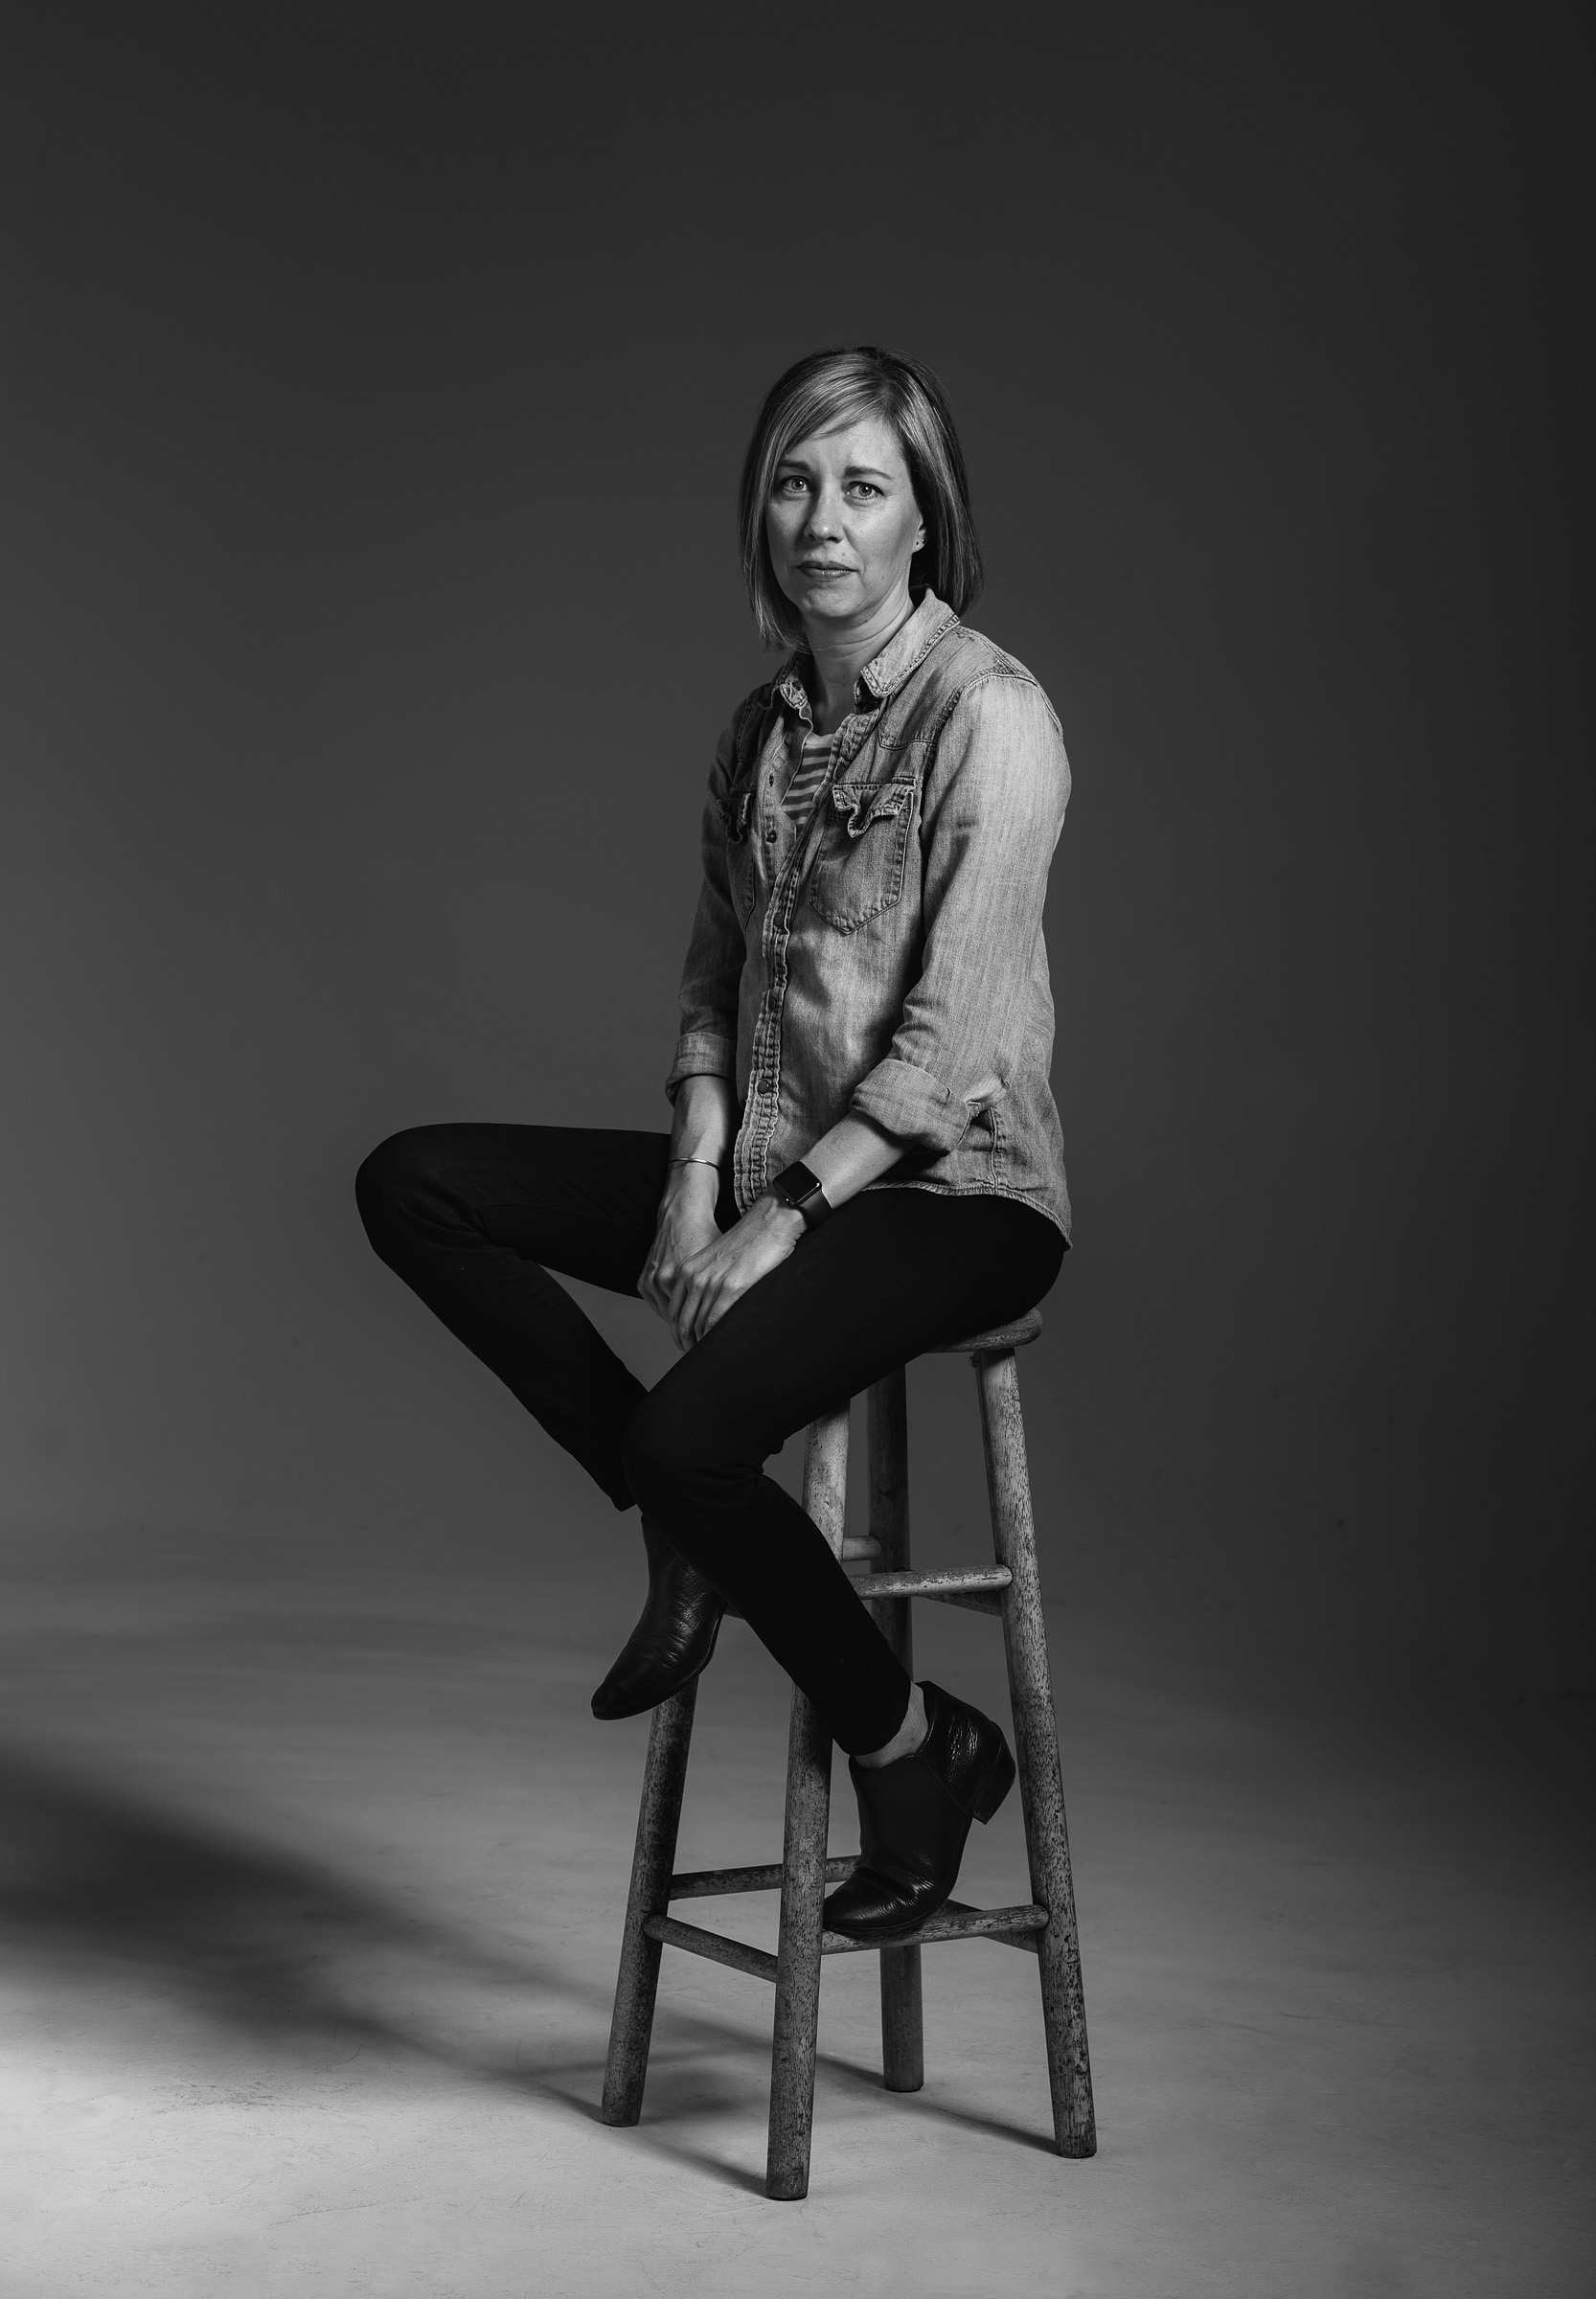 Diversity #metoo porrtait - Christy-Caroll,  seated on a stool in black and white image